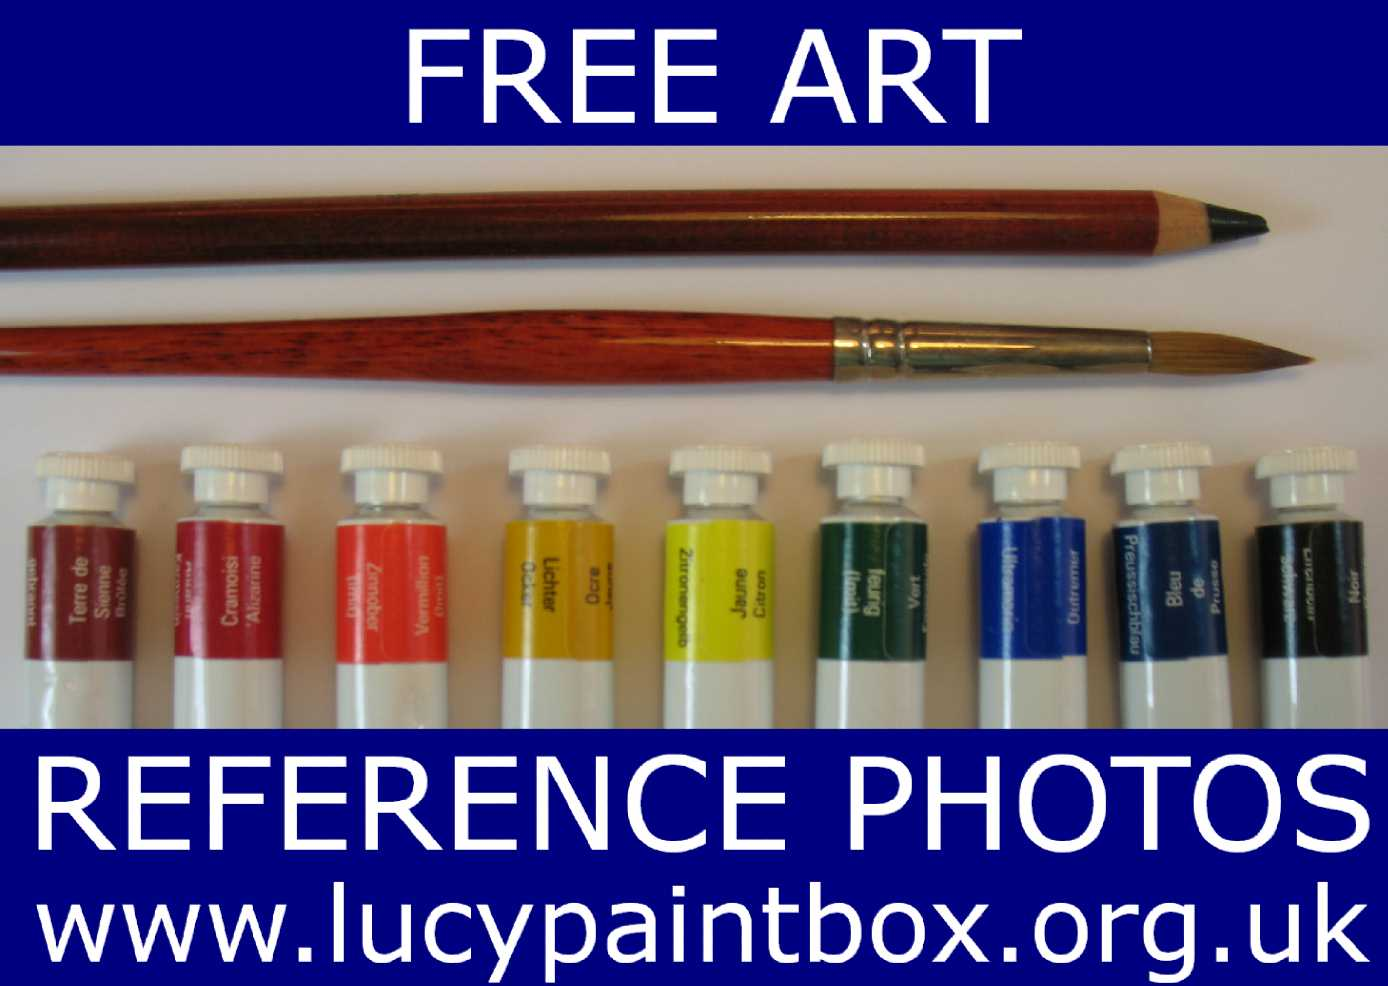 Free art reference photos